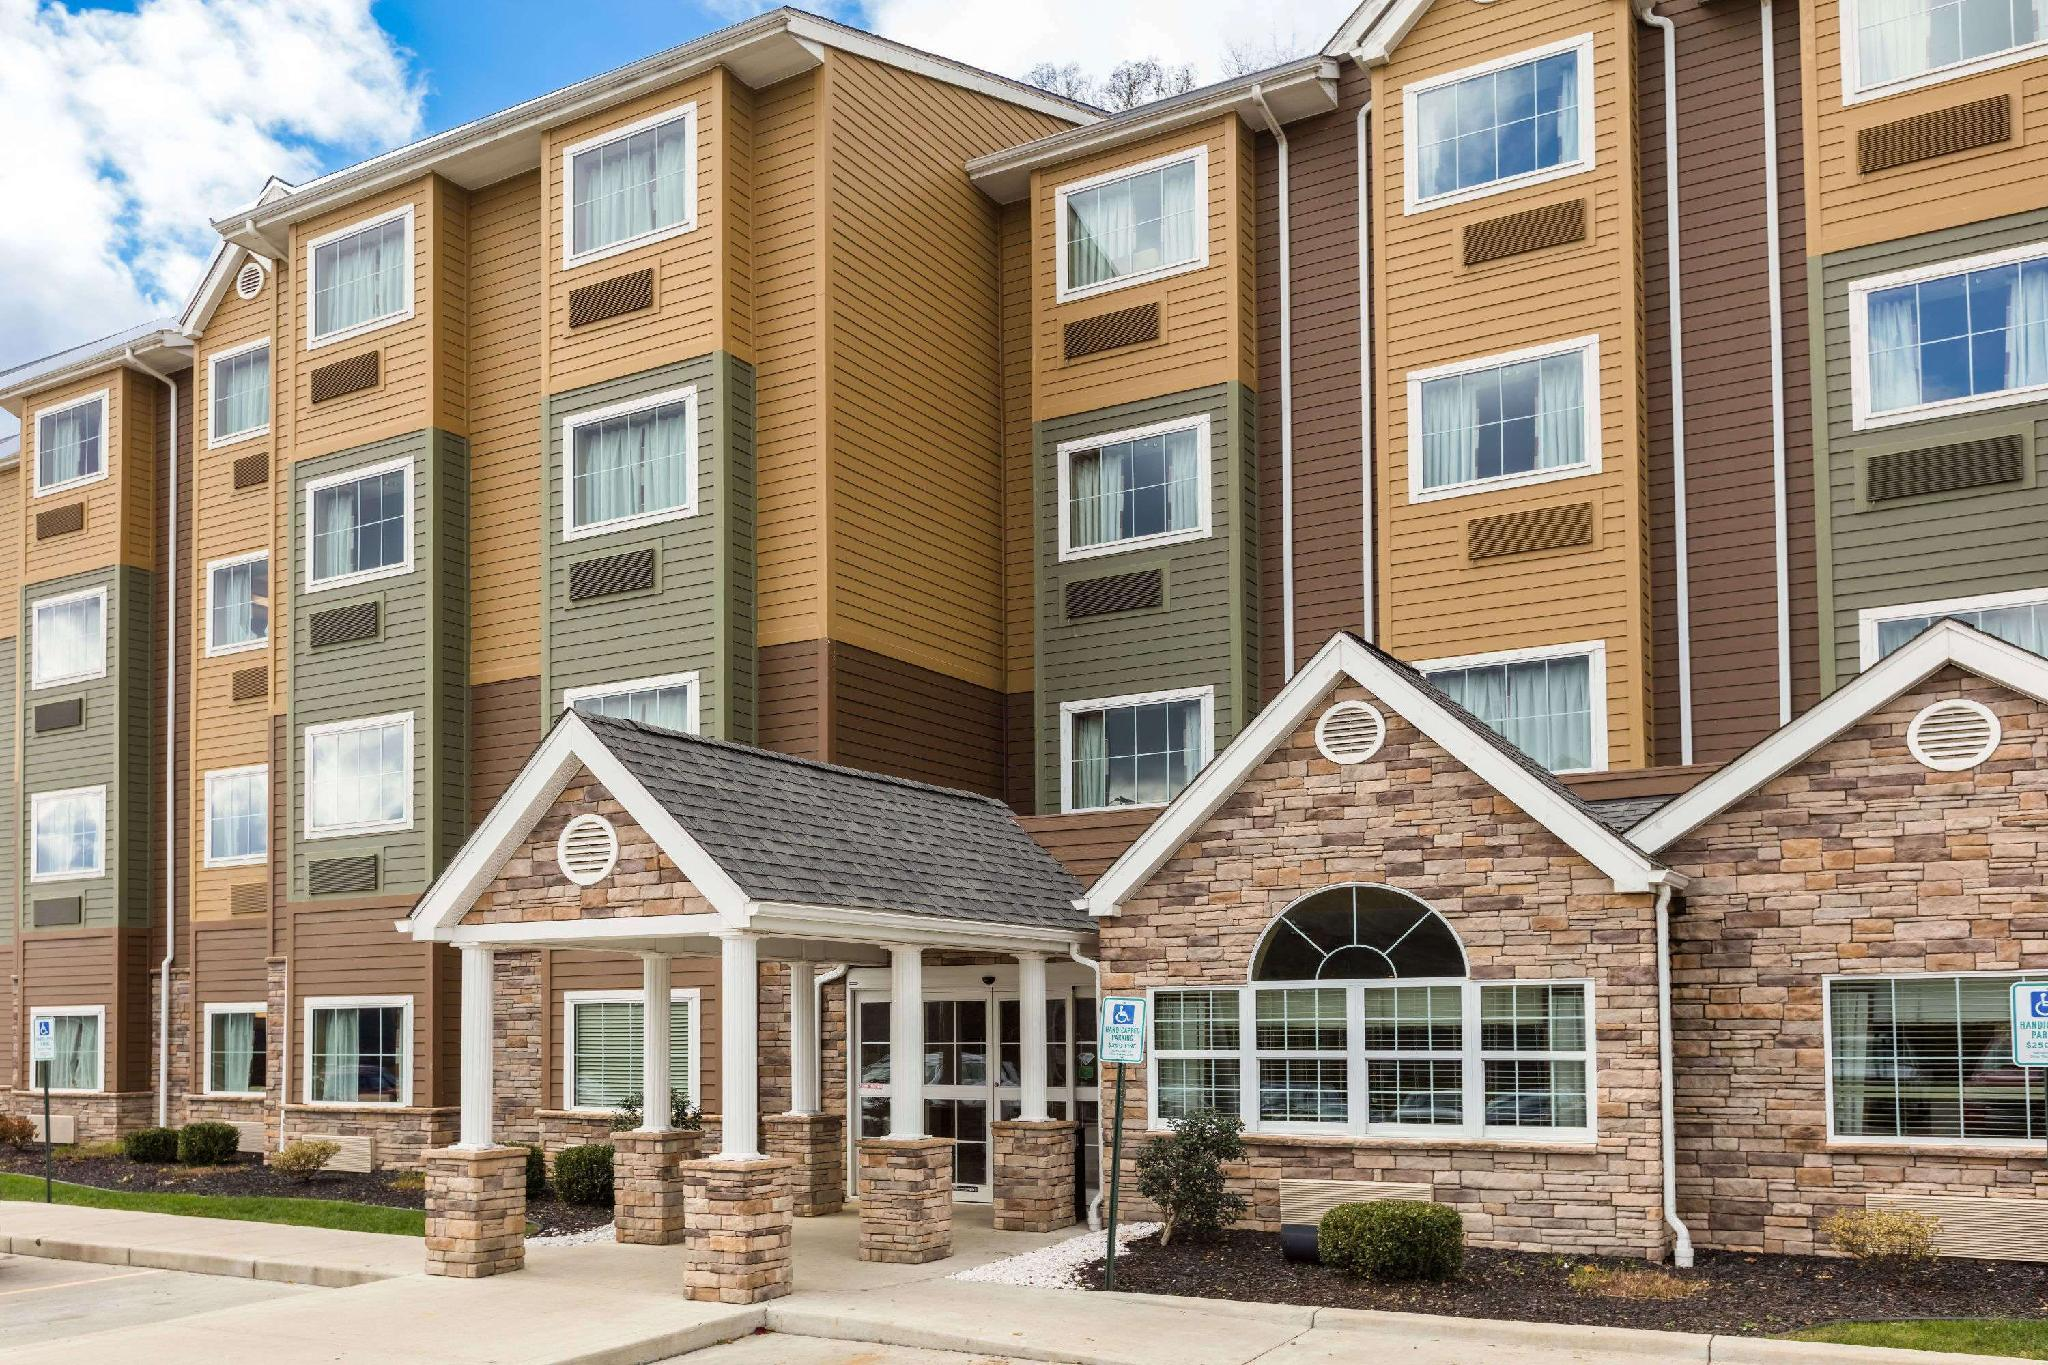 Microtel Inn And Suites By Wyndham Steubenville